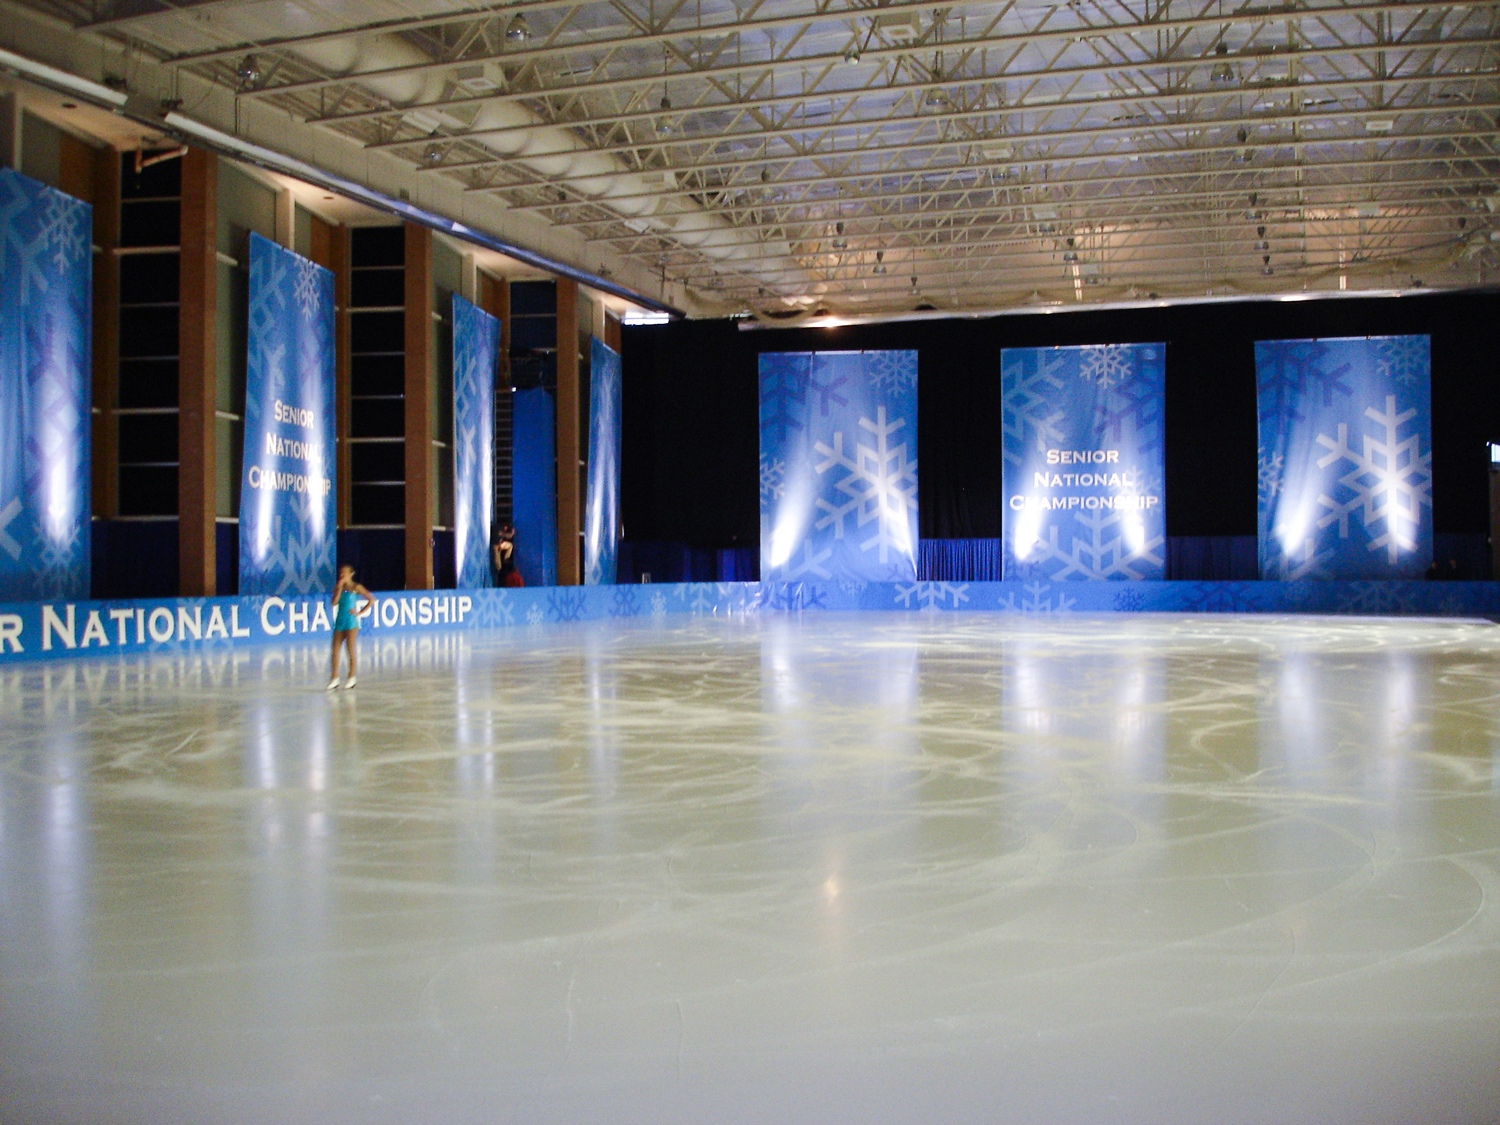 This photo shows a major national figure skating championship. We painted the hockey rink pure white, removed all the protective glass, and created huge wintery graphics to drape the walls and beautify the dasher-boards.